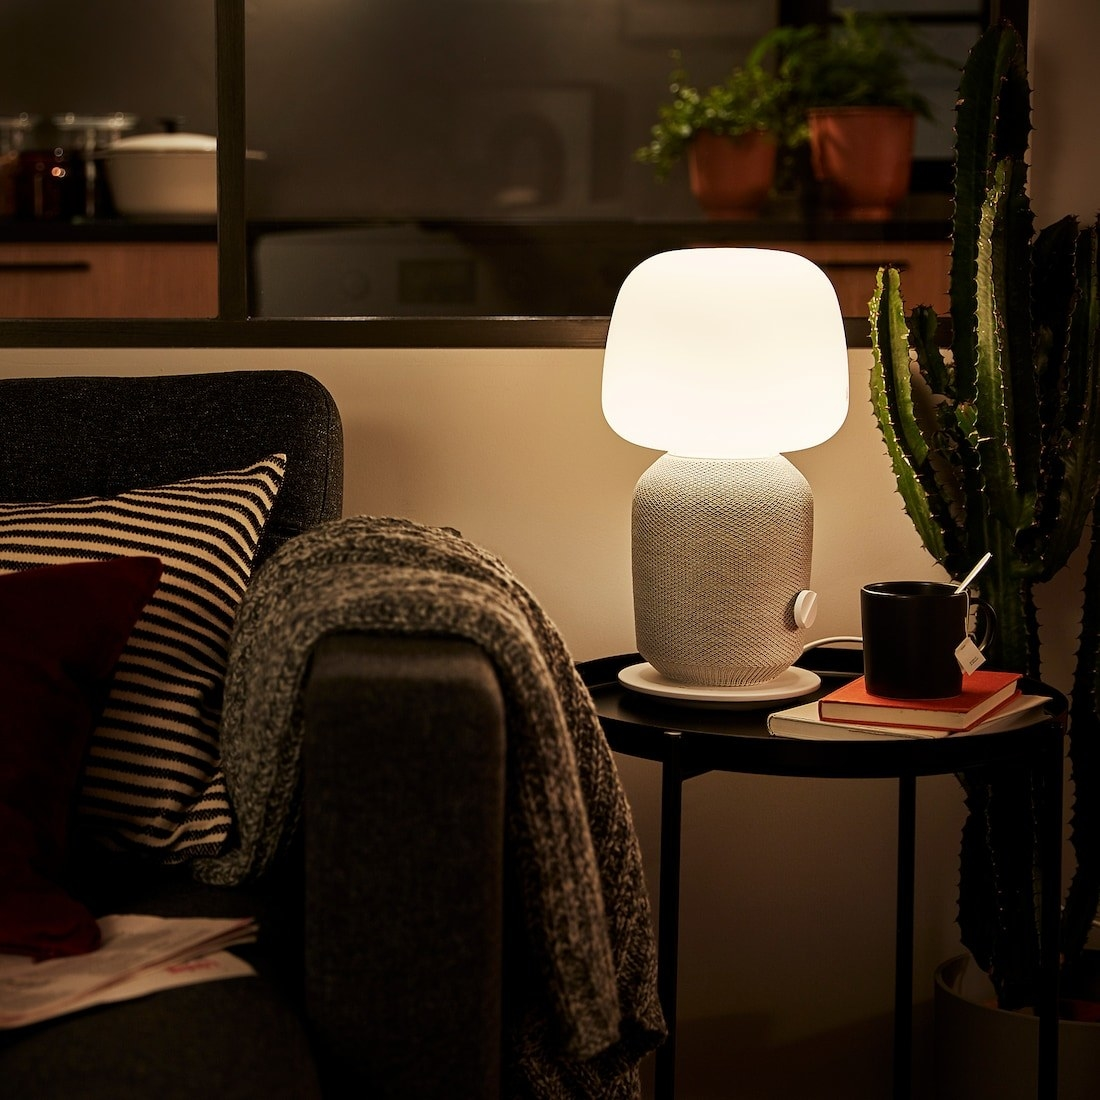 the grey speaker light sitting on a side table